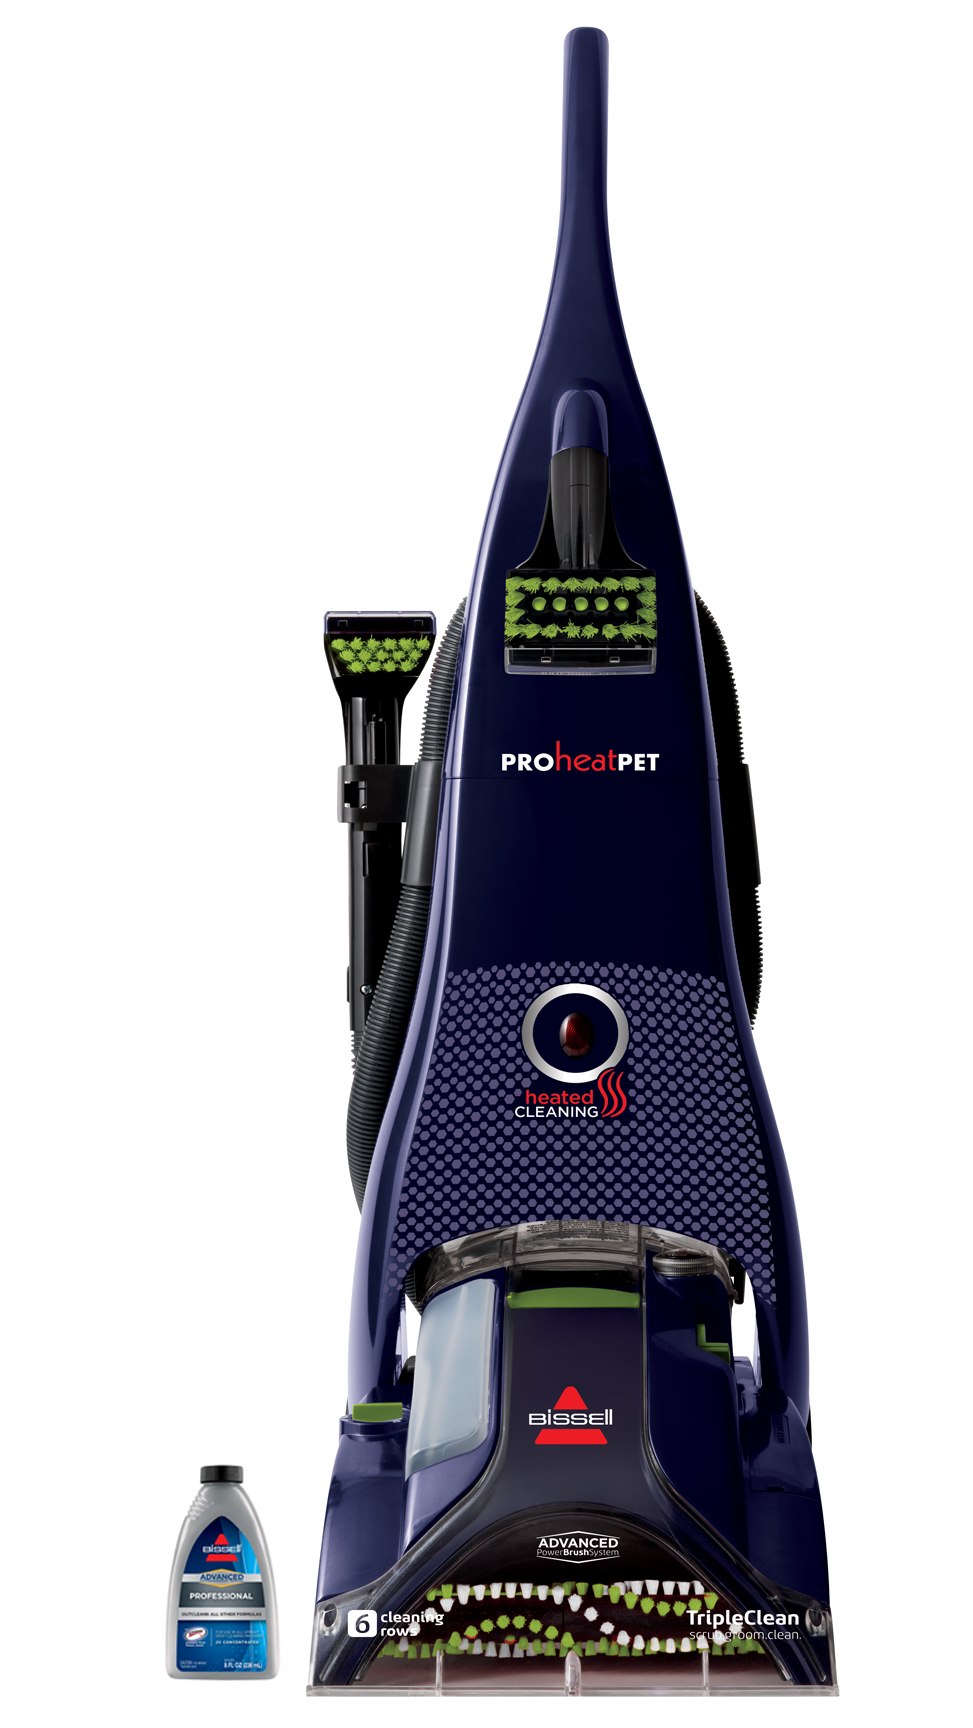 bissell heated carpet cleaner multi surface bissell proheat pet advanced fullsize carpet cleaner 1799 walmartcom